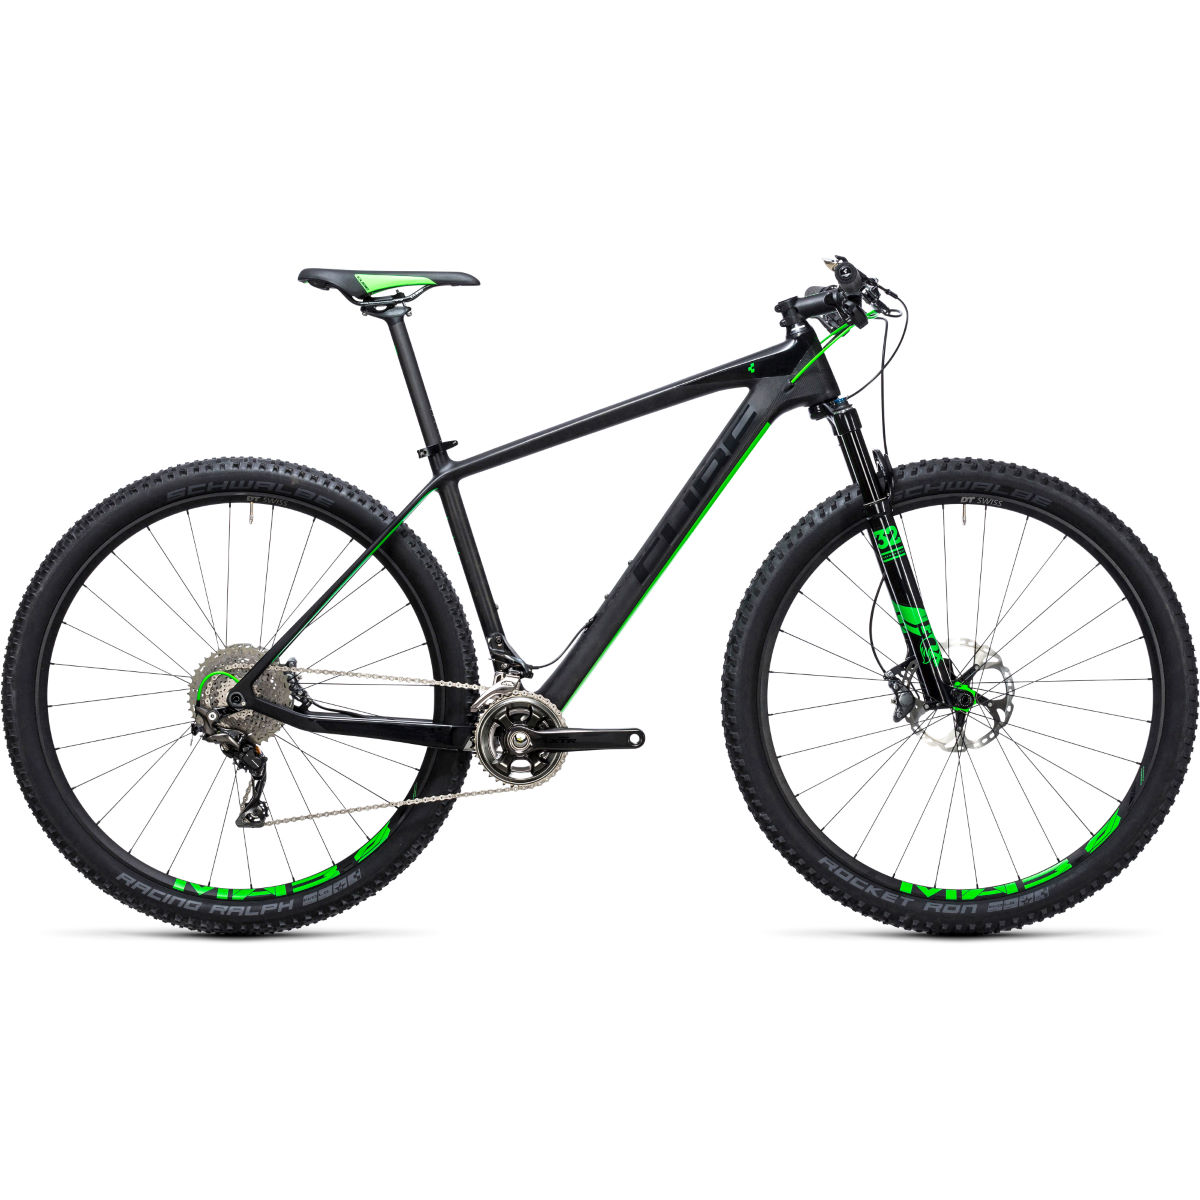 VTT semi-rigide Cube Elite C:68 Race 29 pouces (2017) - 21'' Stock Bike